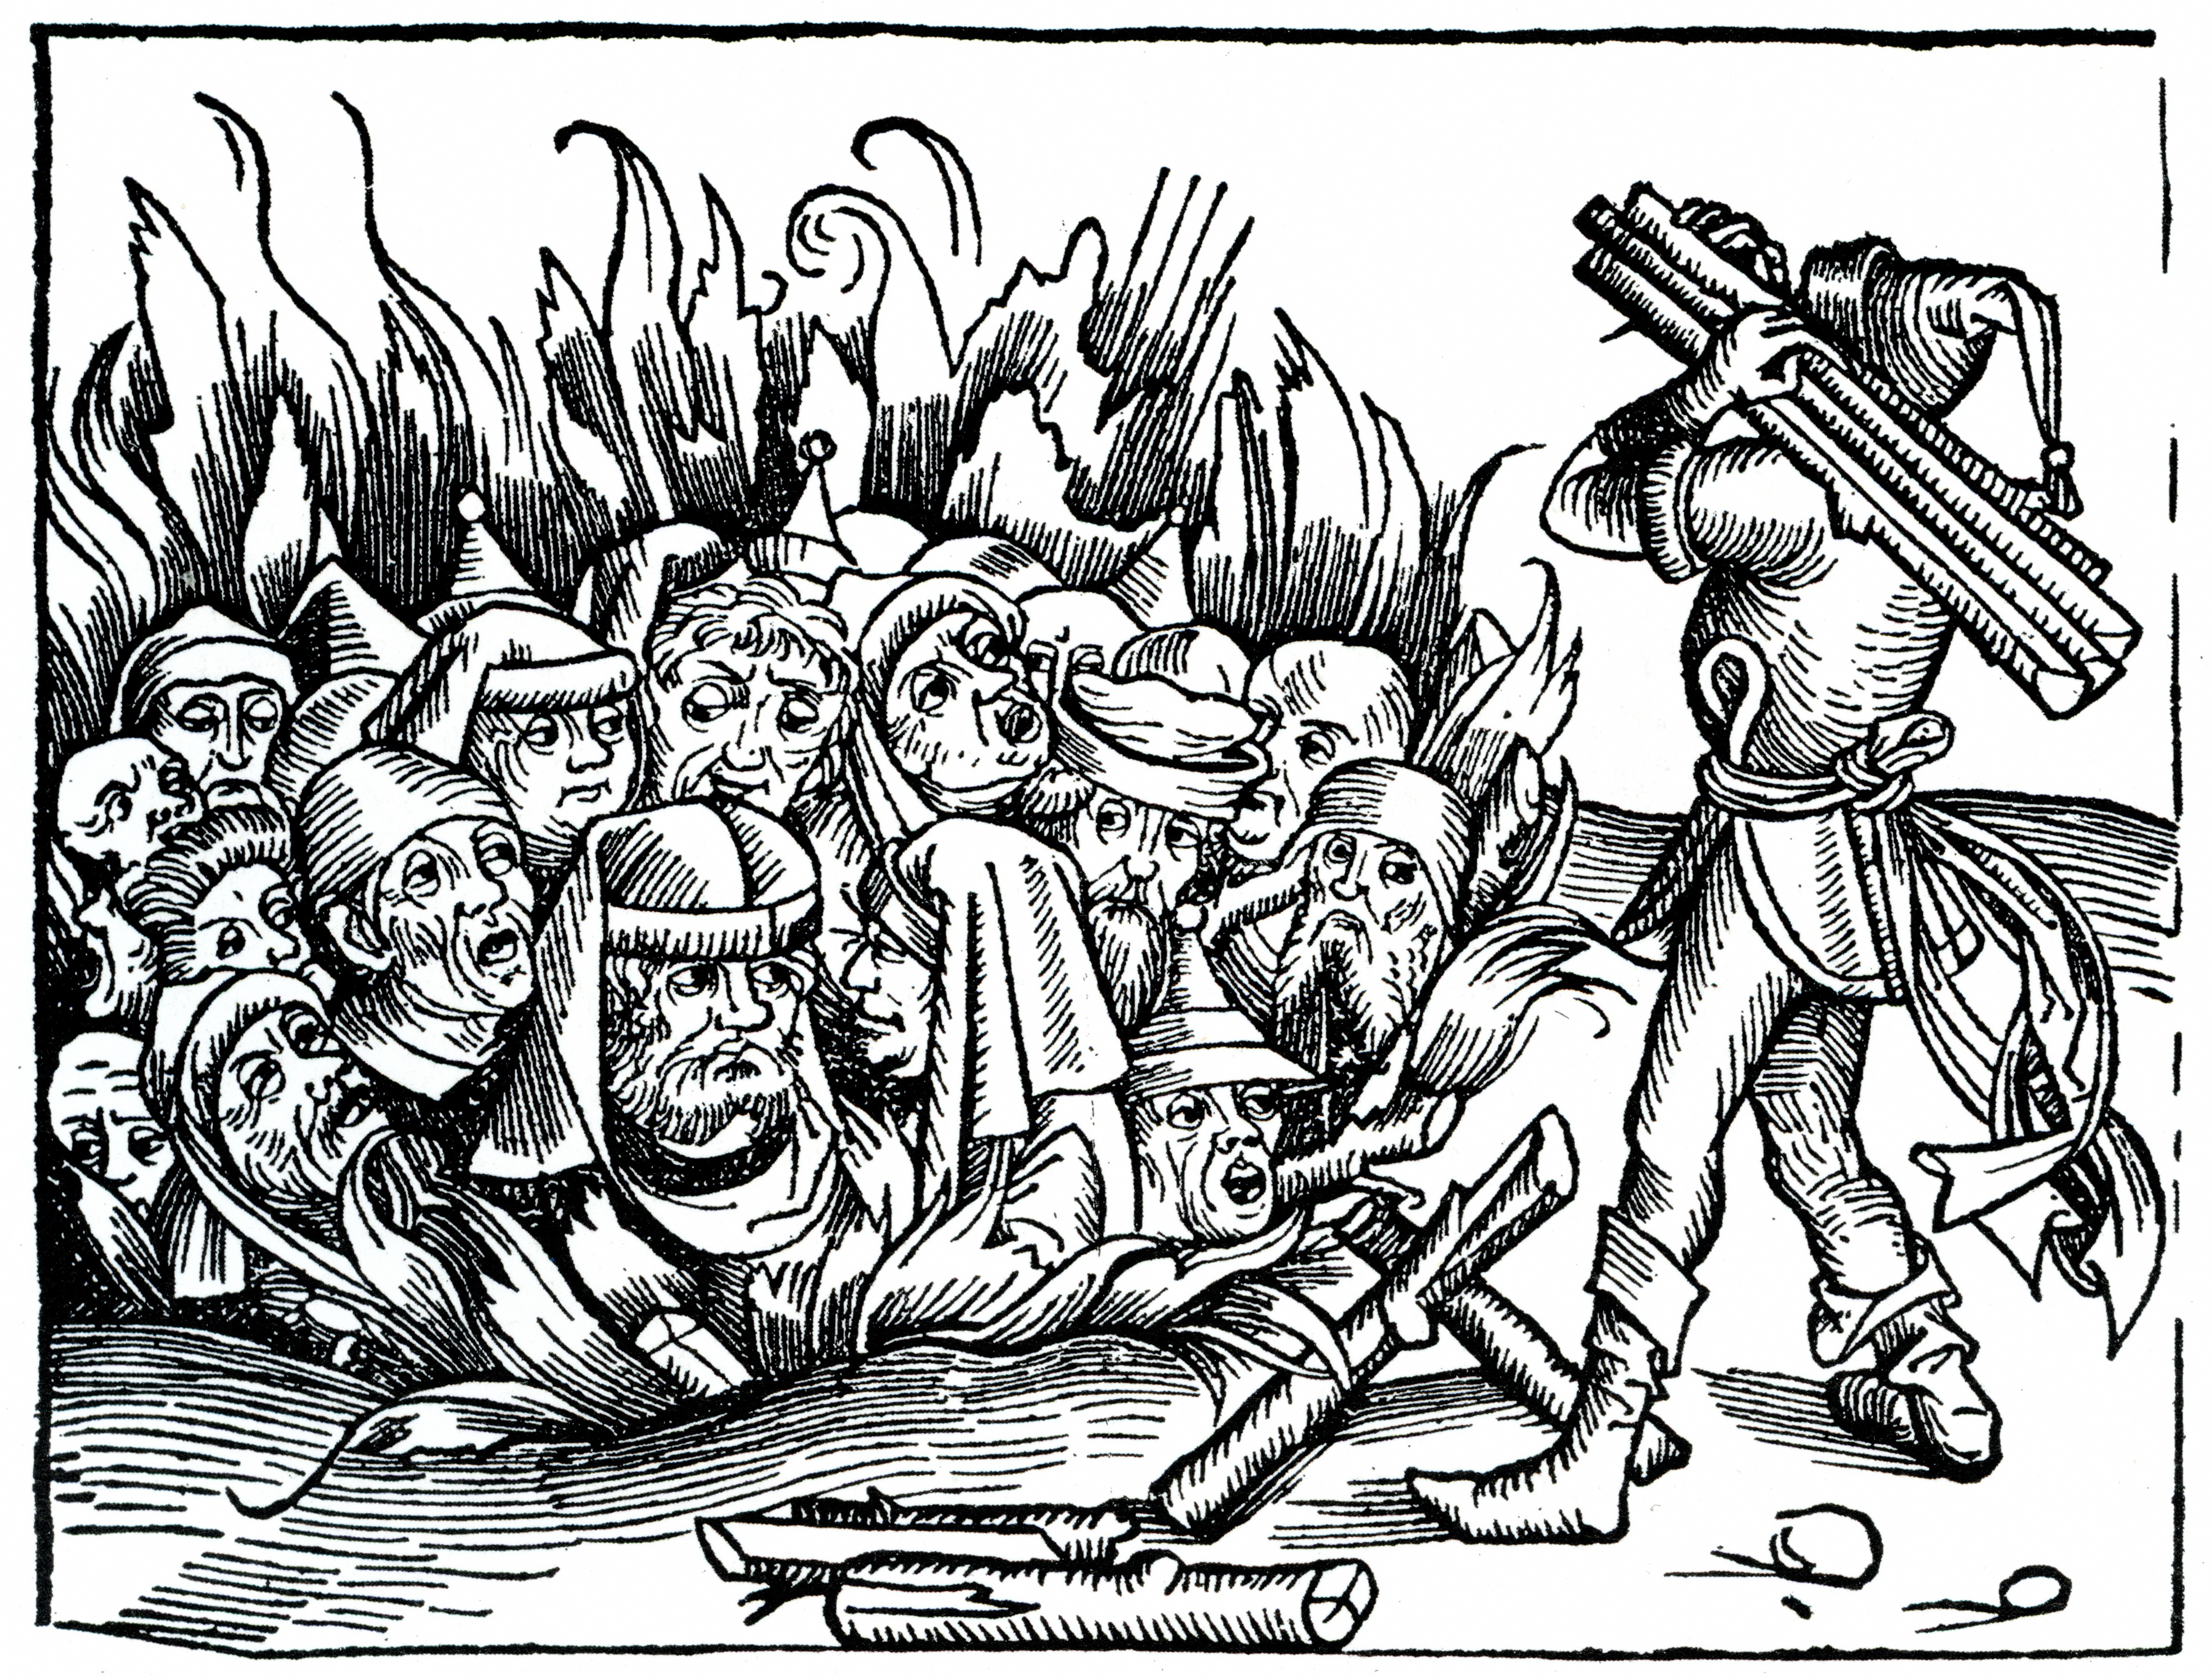 Jews burnt during the bubonic plague, accusing them in the contamination of christians wells (woodcut illustration from Nuremberg Chronicle, 1493)